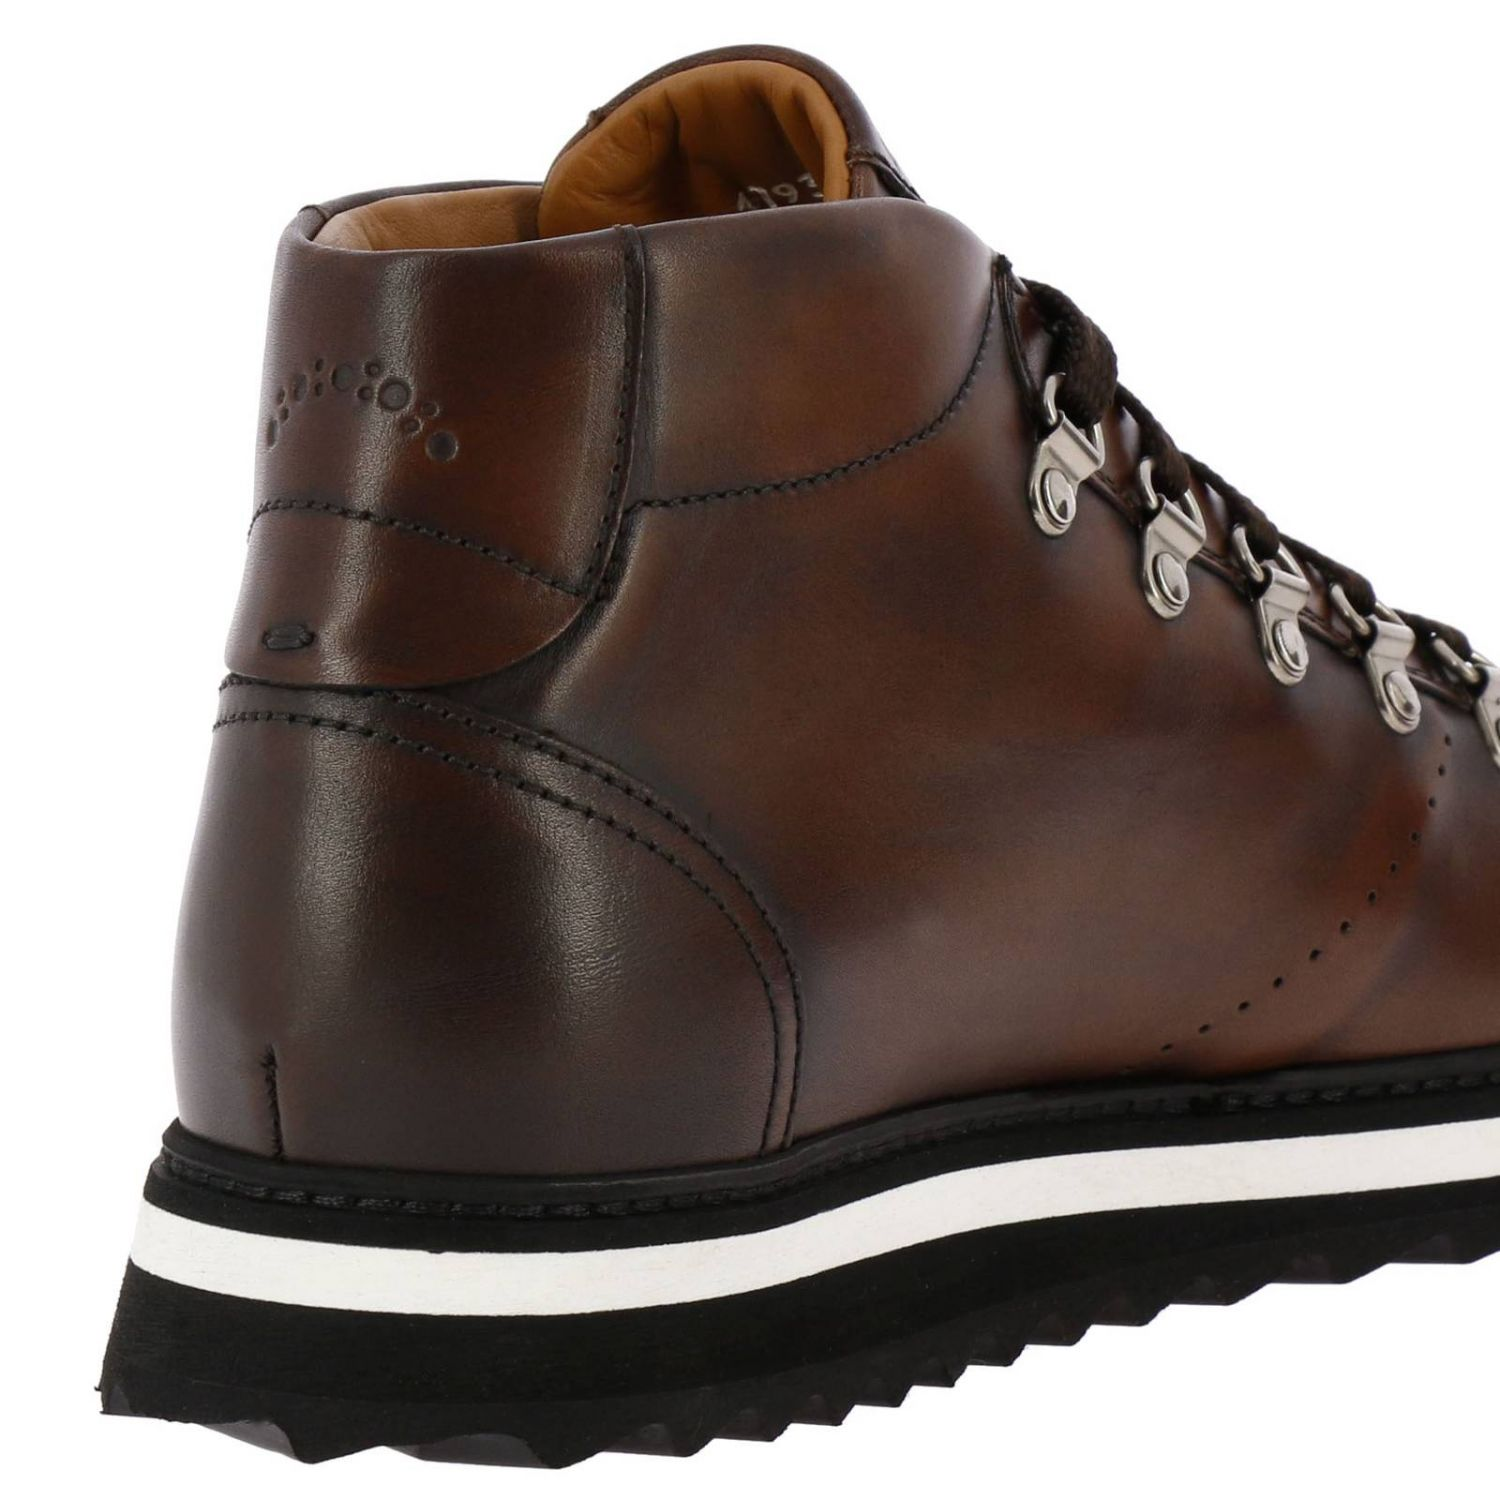 Shoes men Doucal's ebony 4